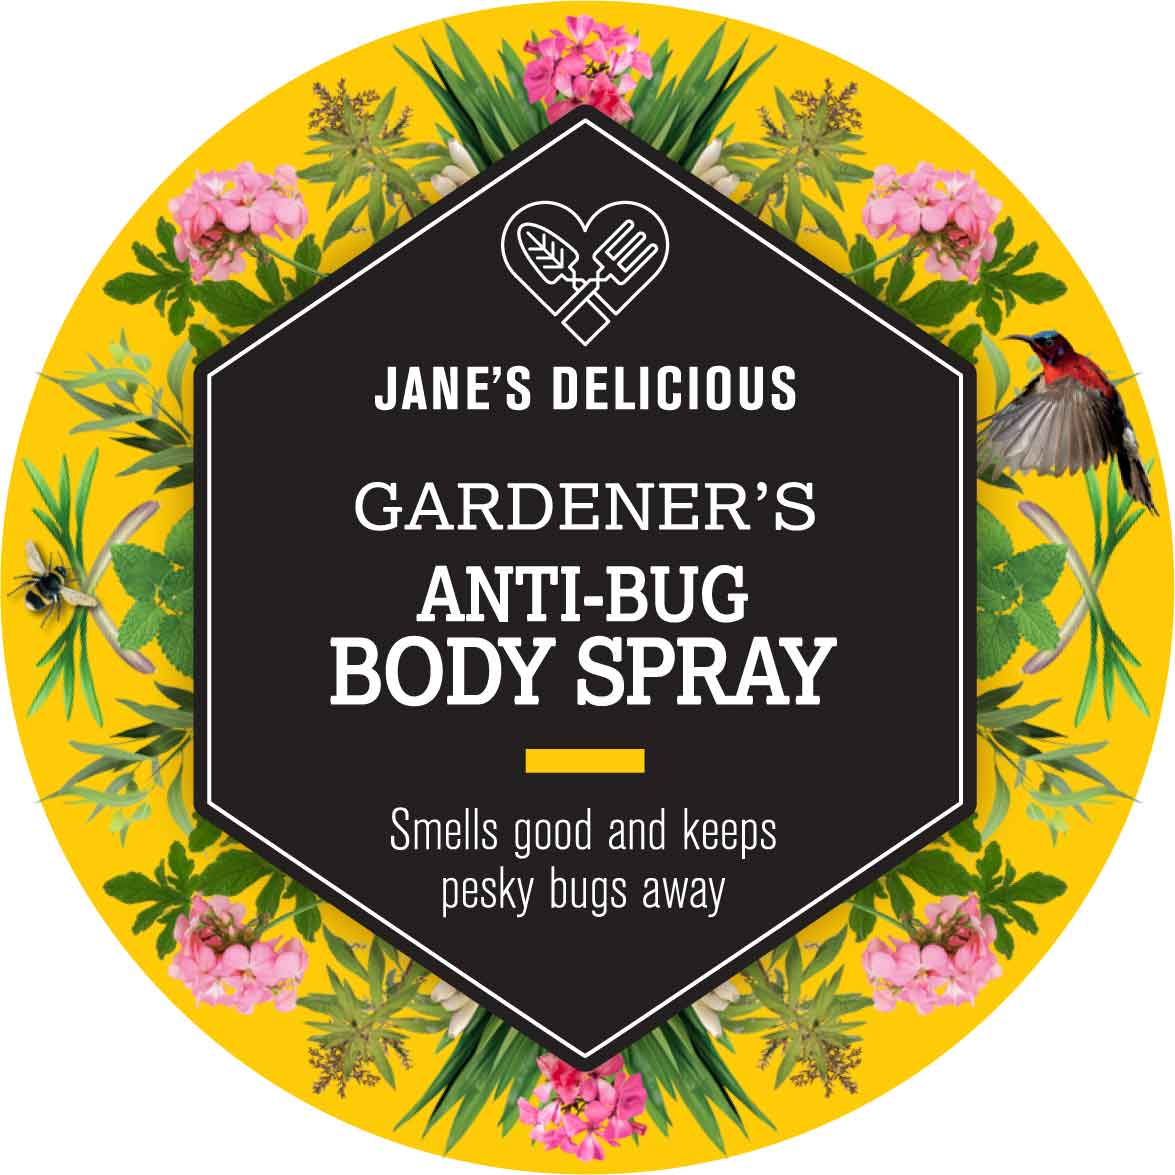 This anti-bug spray smells delicious and keeps mosqitoes and gnats away